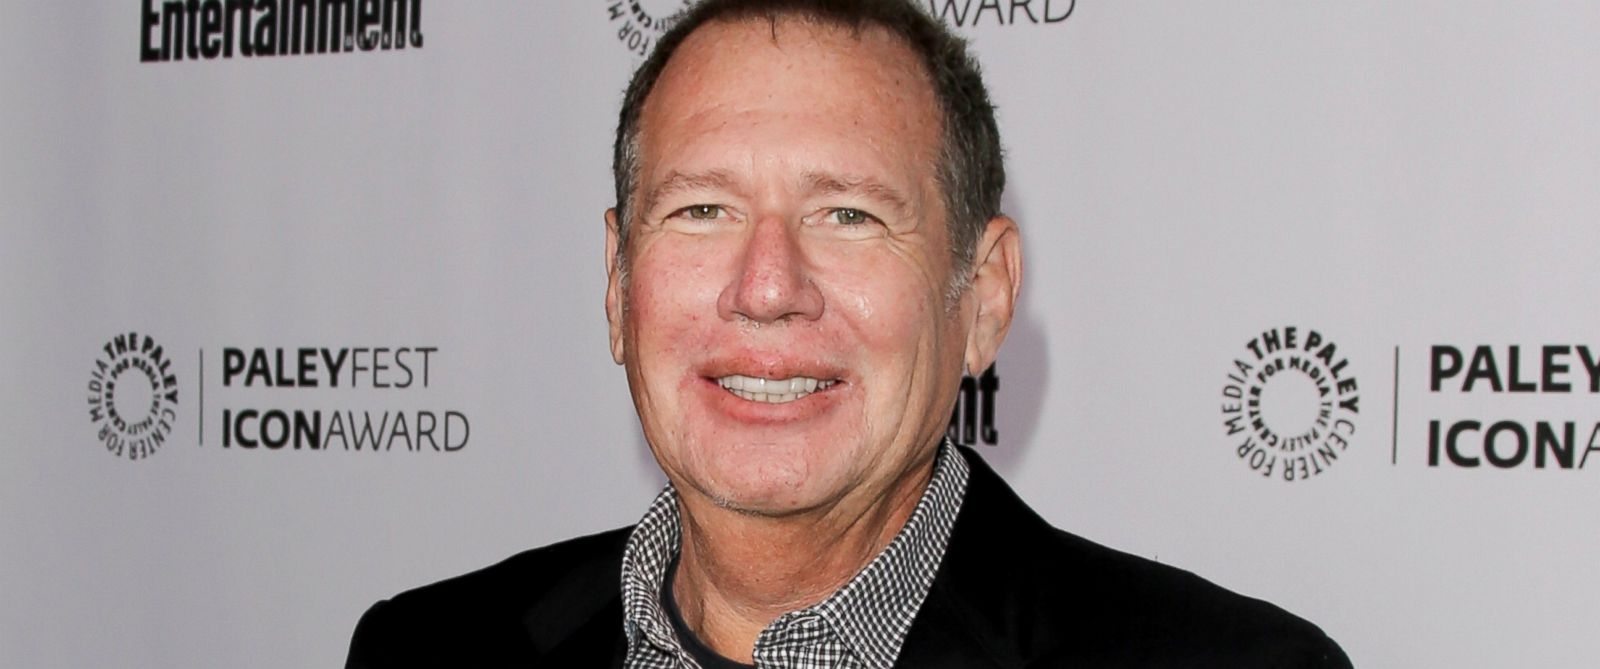 PHOTO: Garry Shandling attends the 2014 Paleyfest Icon award presentation at The Paley Center for Media, March 10, 2014, in Beverly Hills, Calif.